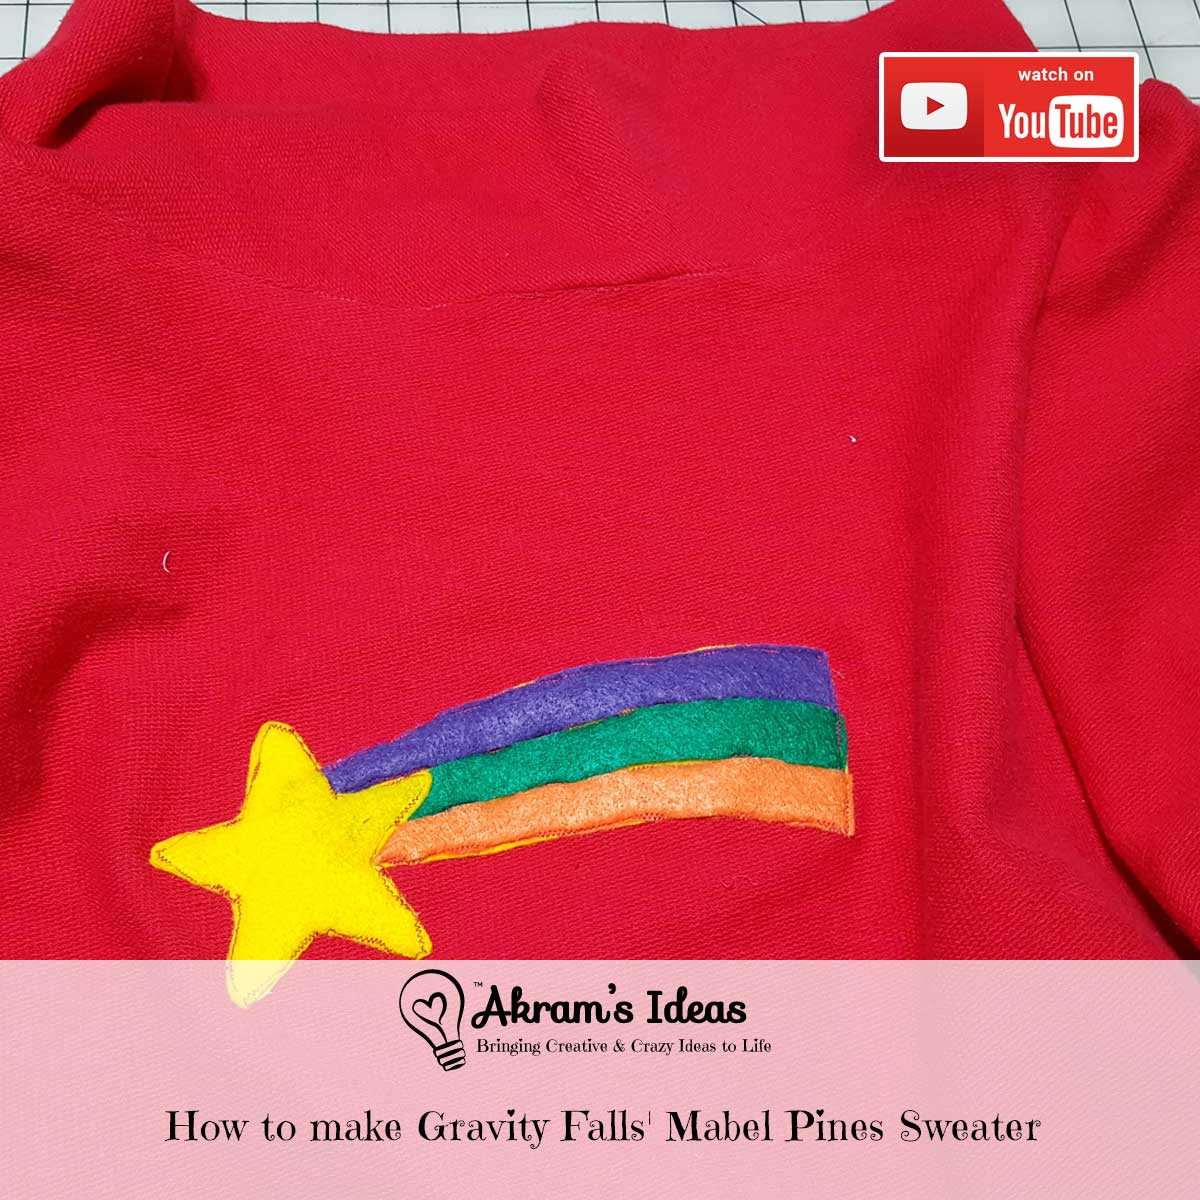 Learn the process I went through the make my Gravity Falls' Mabel Pines sweater using New Look 6145 pattern.